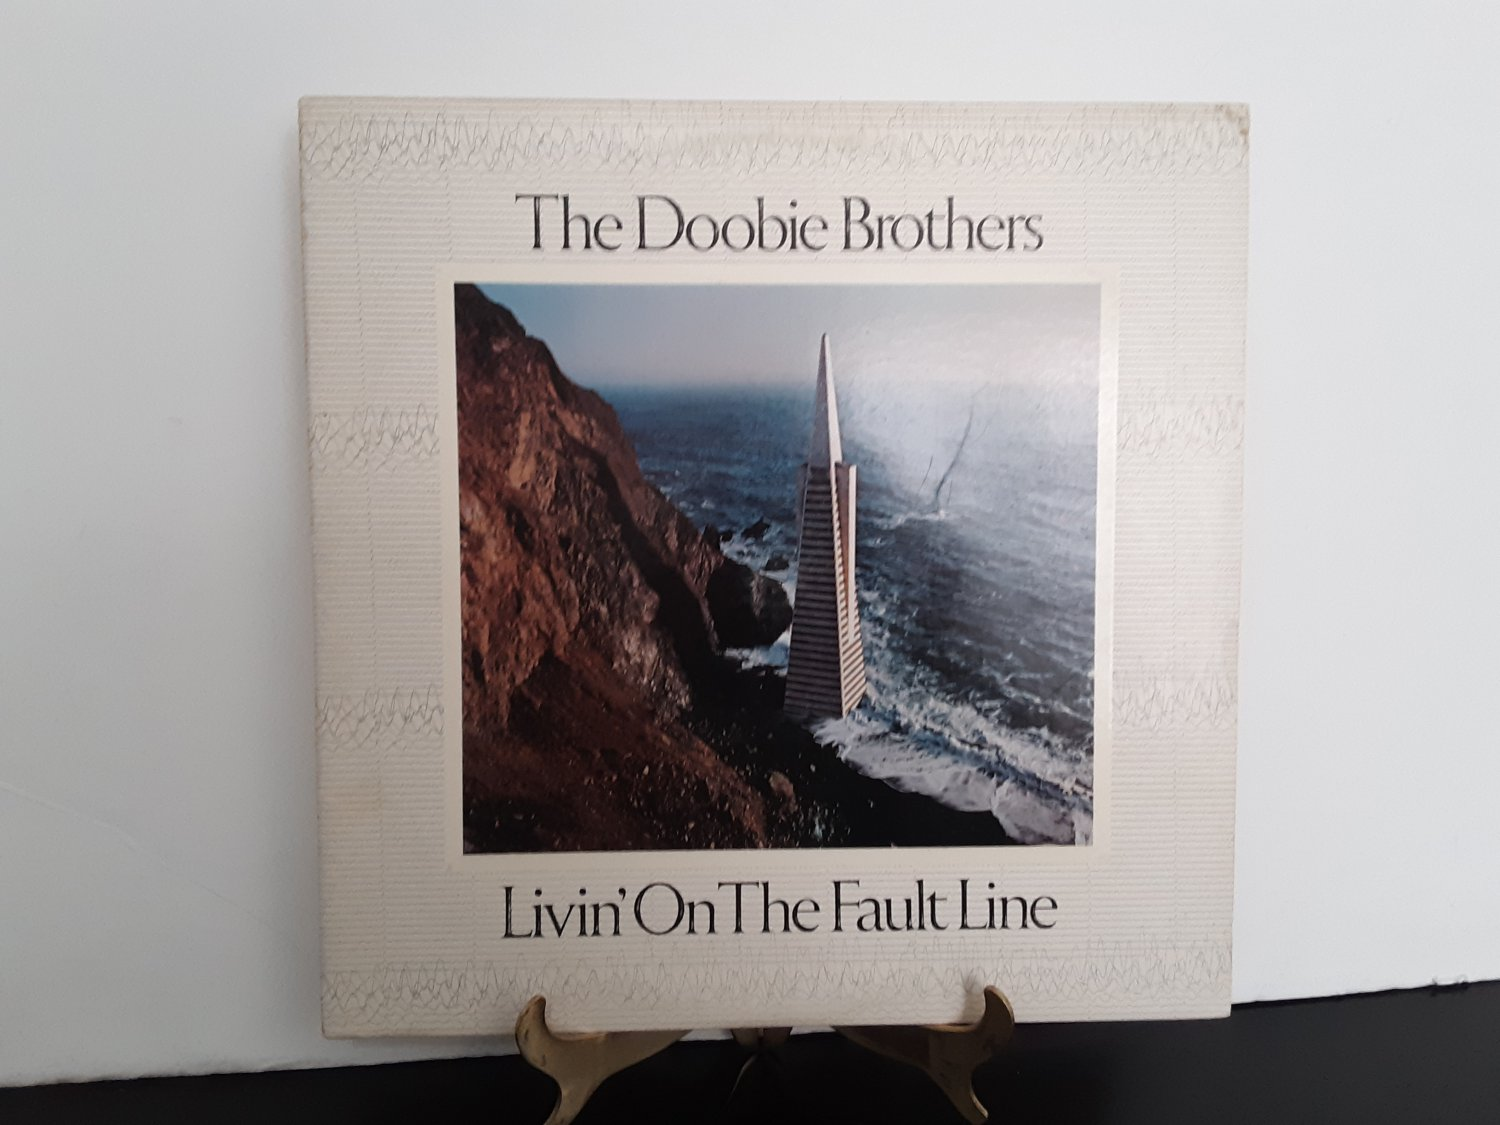 The Doobie Brothers - Livin' On The Fault Line - Circa 1977